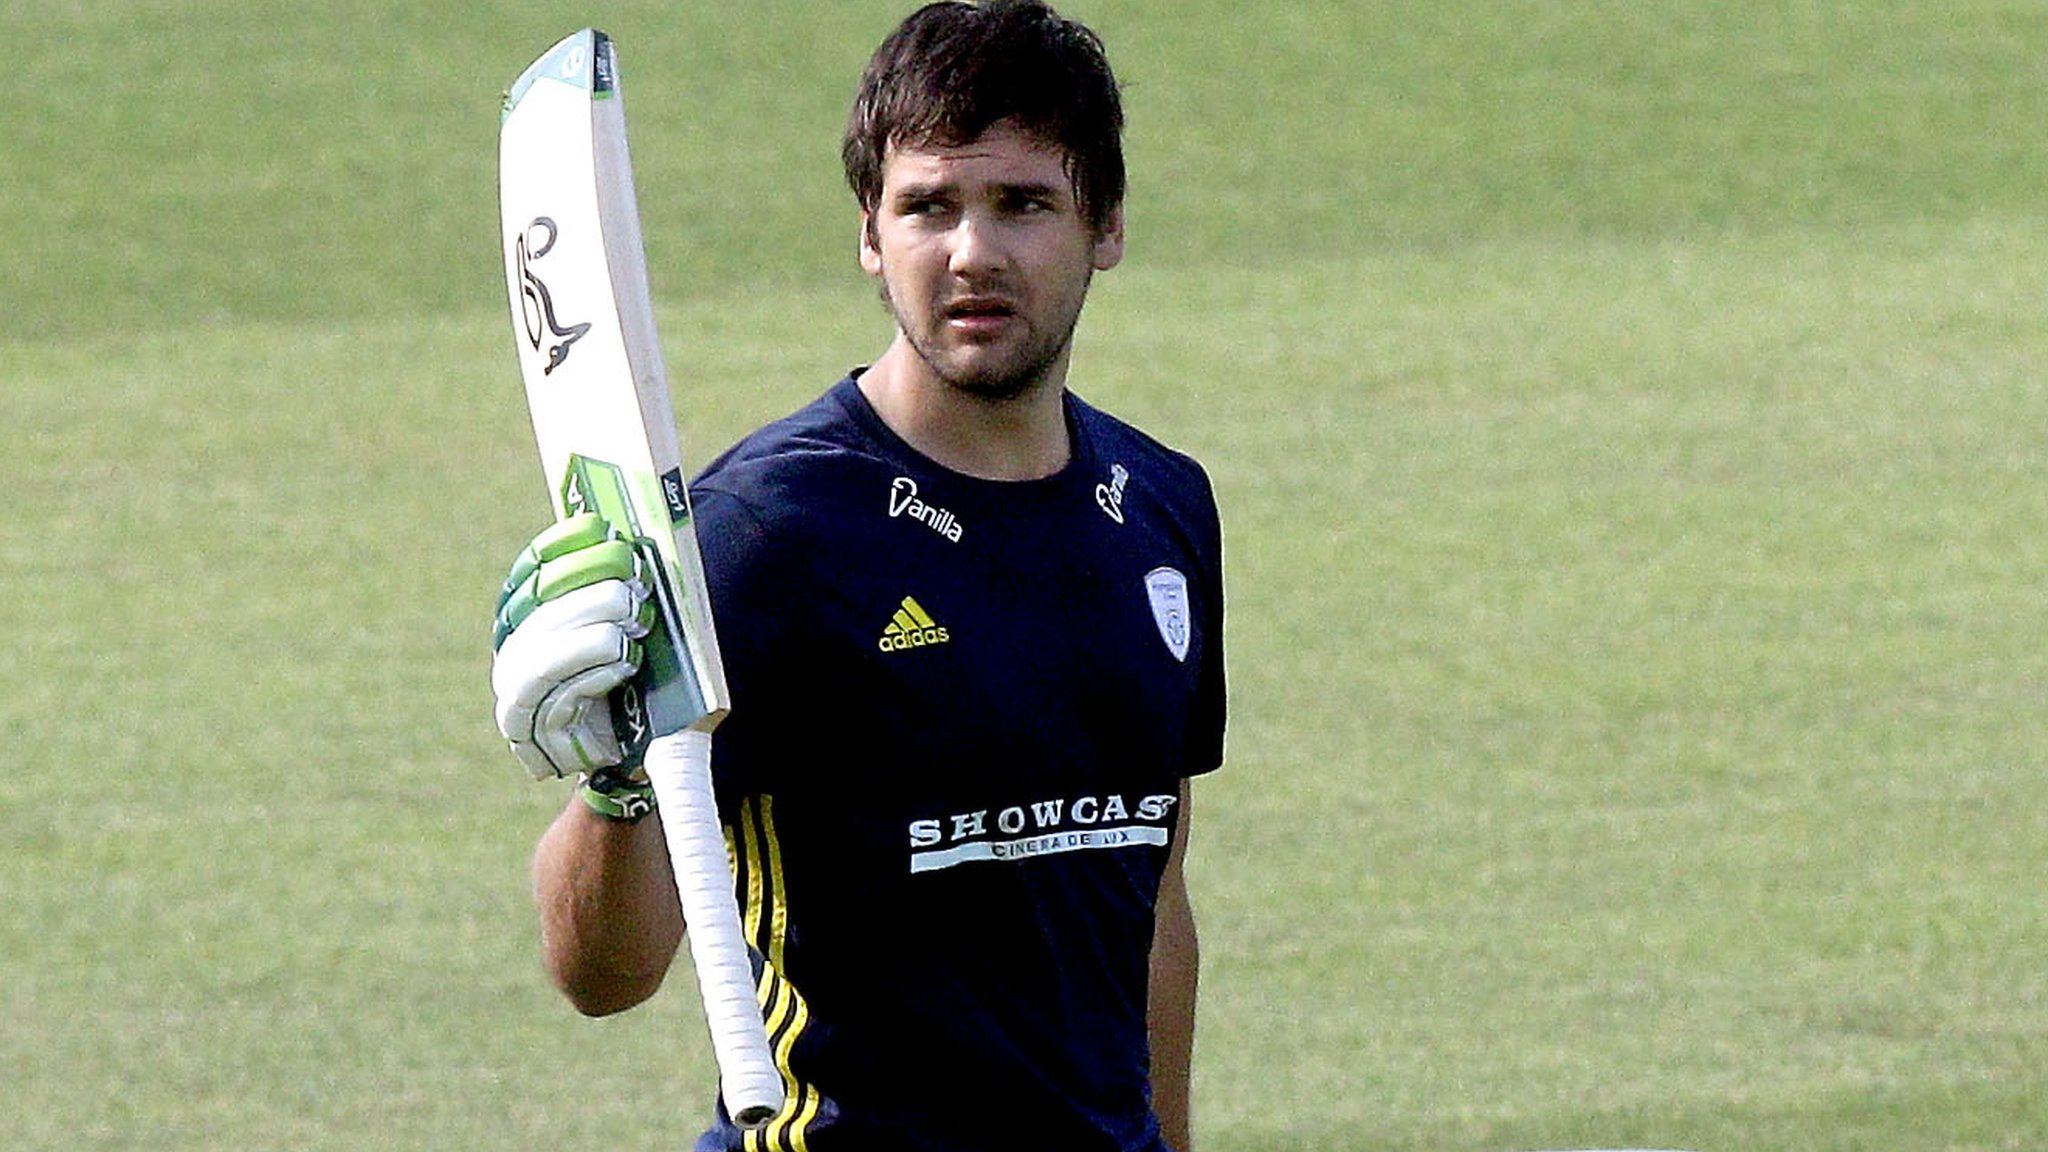 One-Day Cup: Rilee Rossouw ton helps Hampshire beat Essex to maintain 100% start